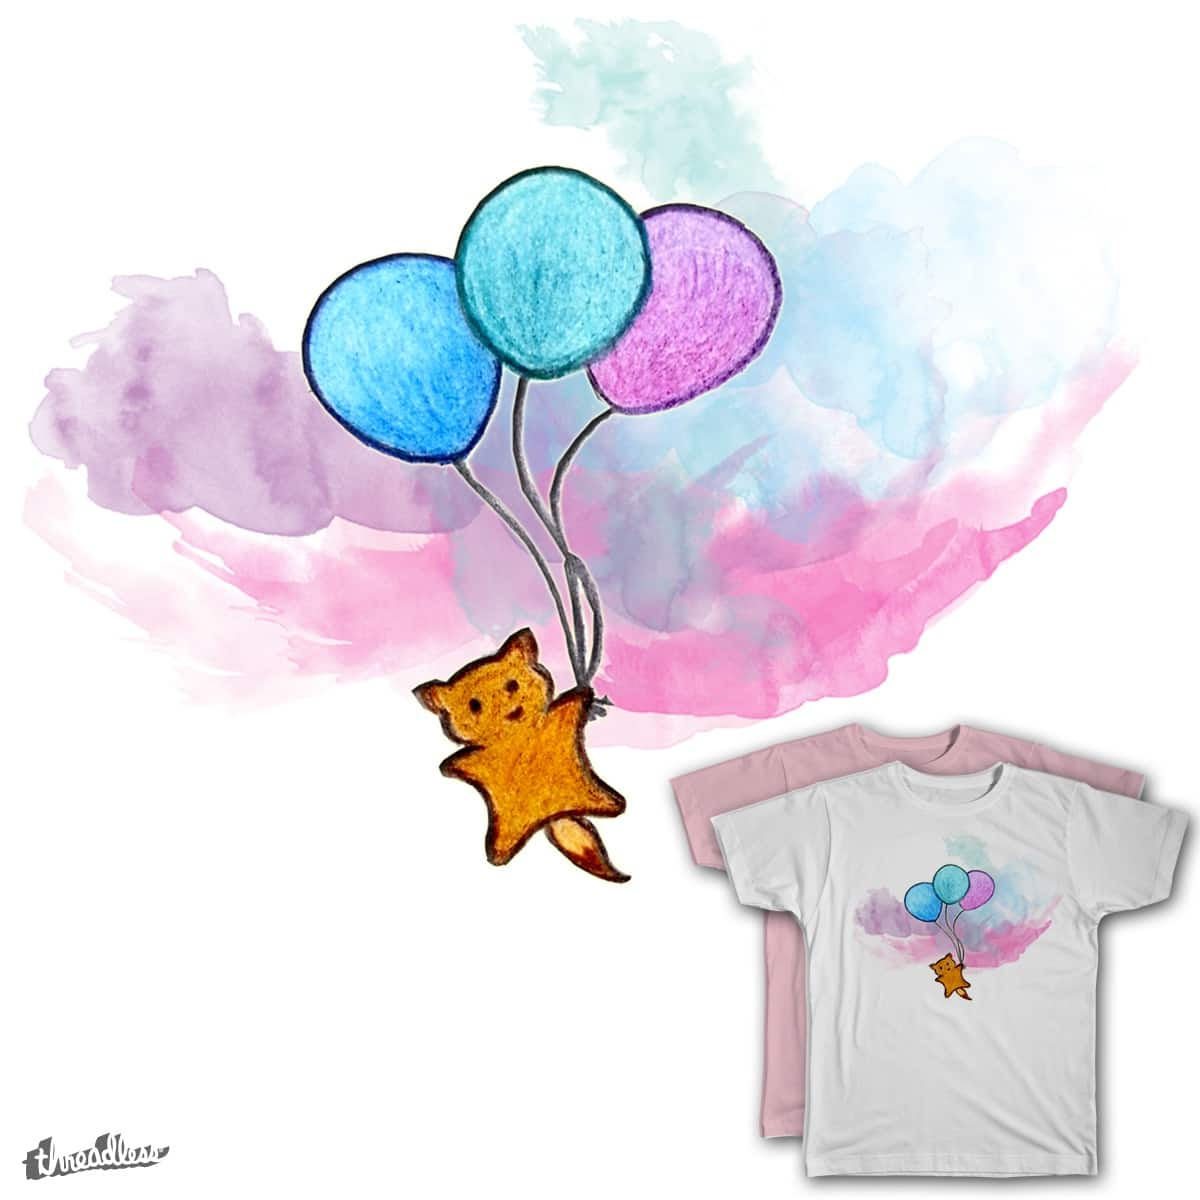 The Sky's the Limit by thatlilfox on Threadless